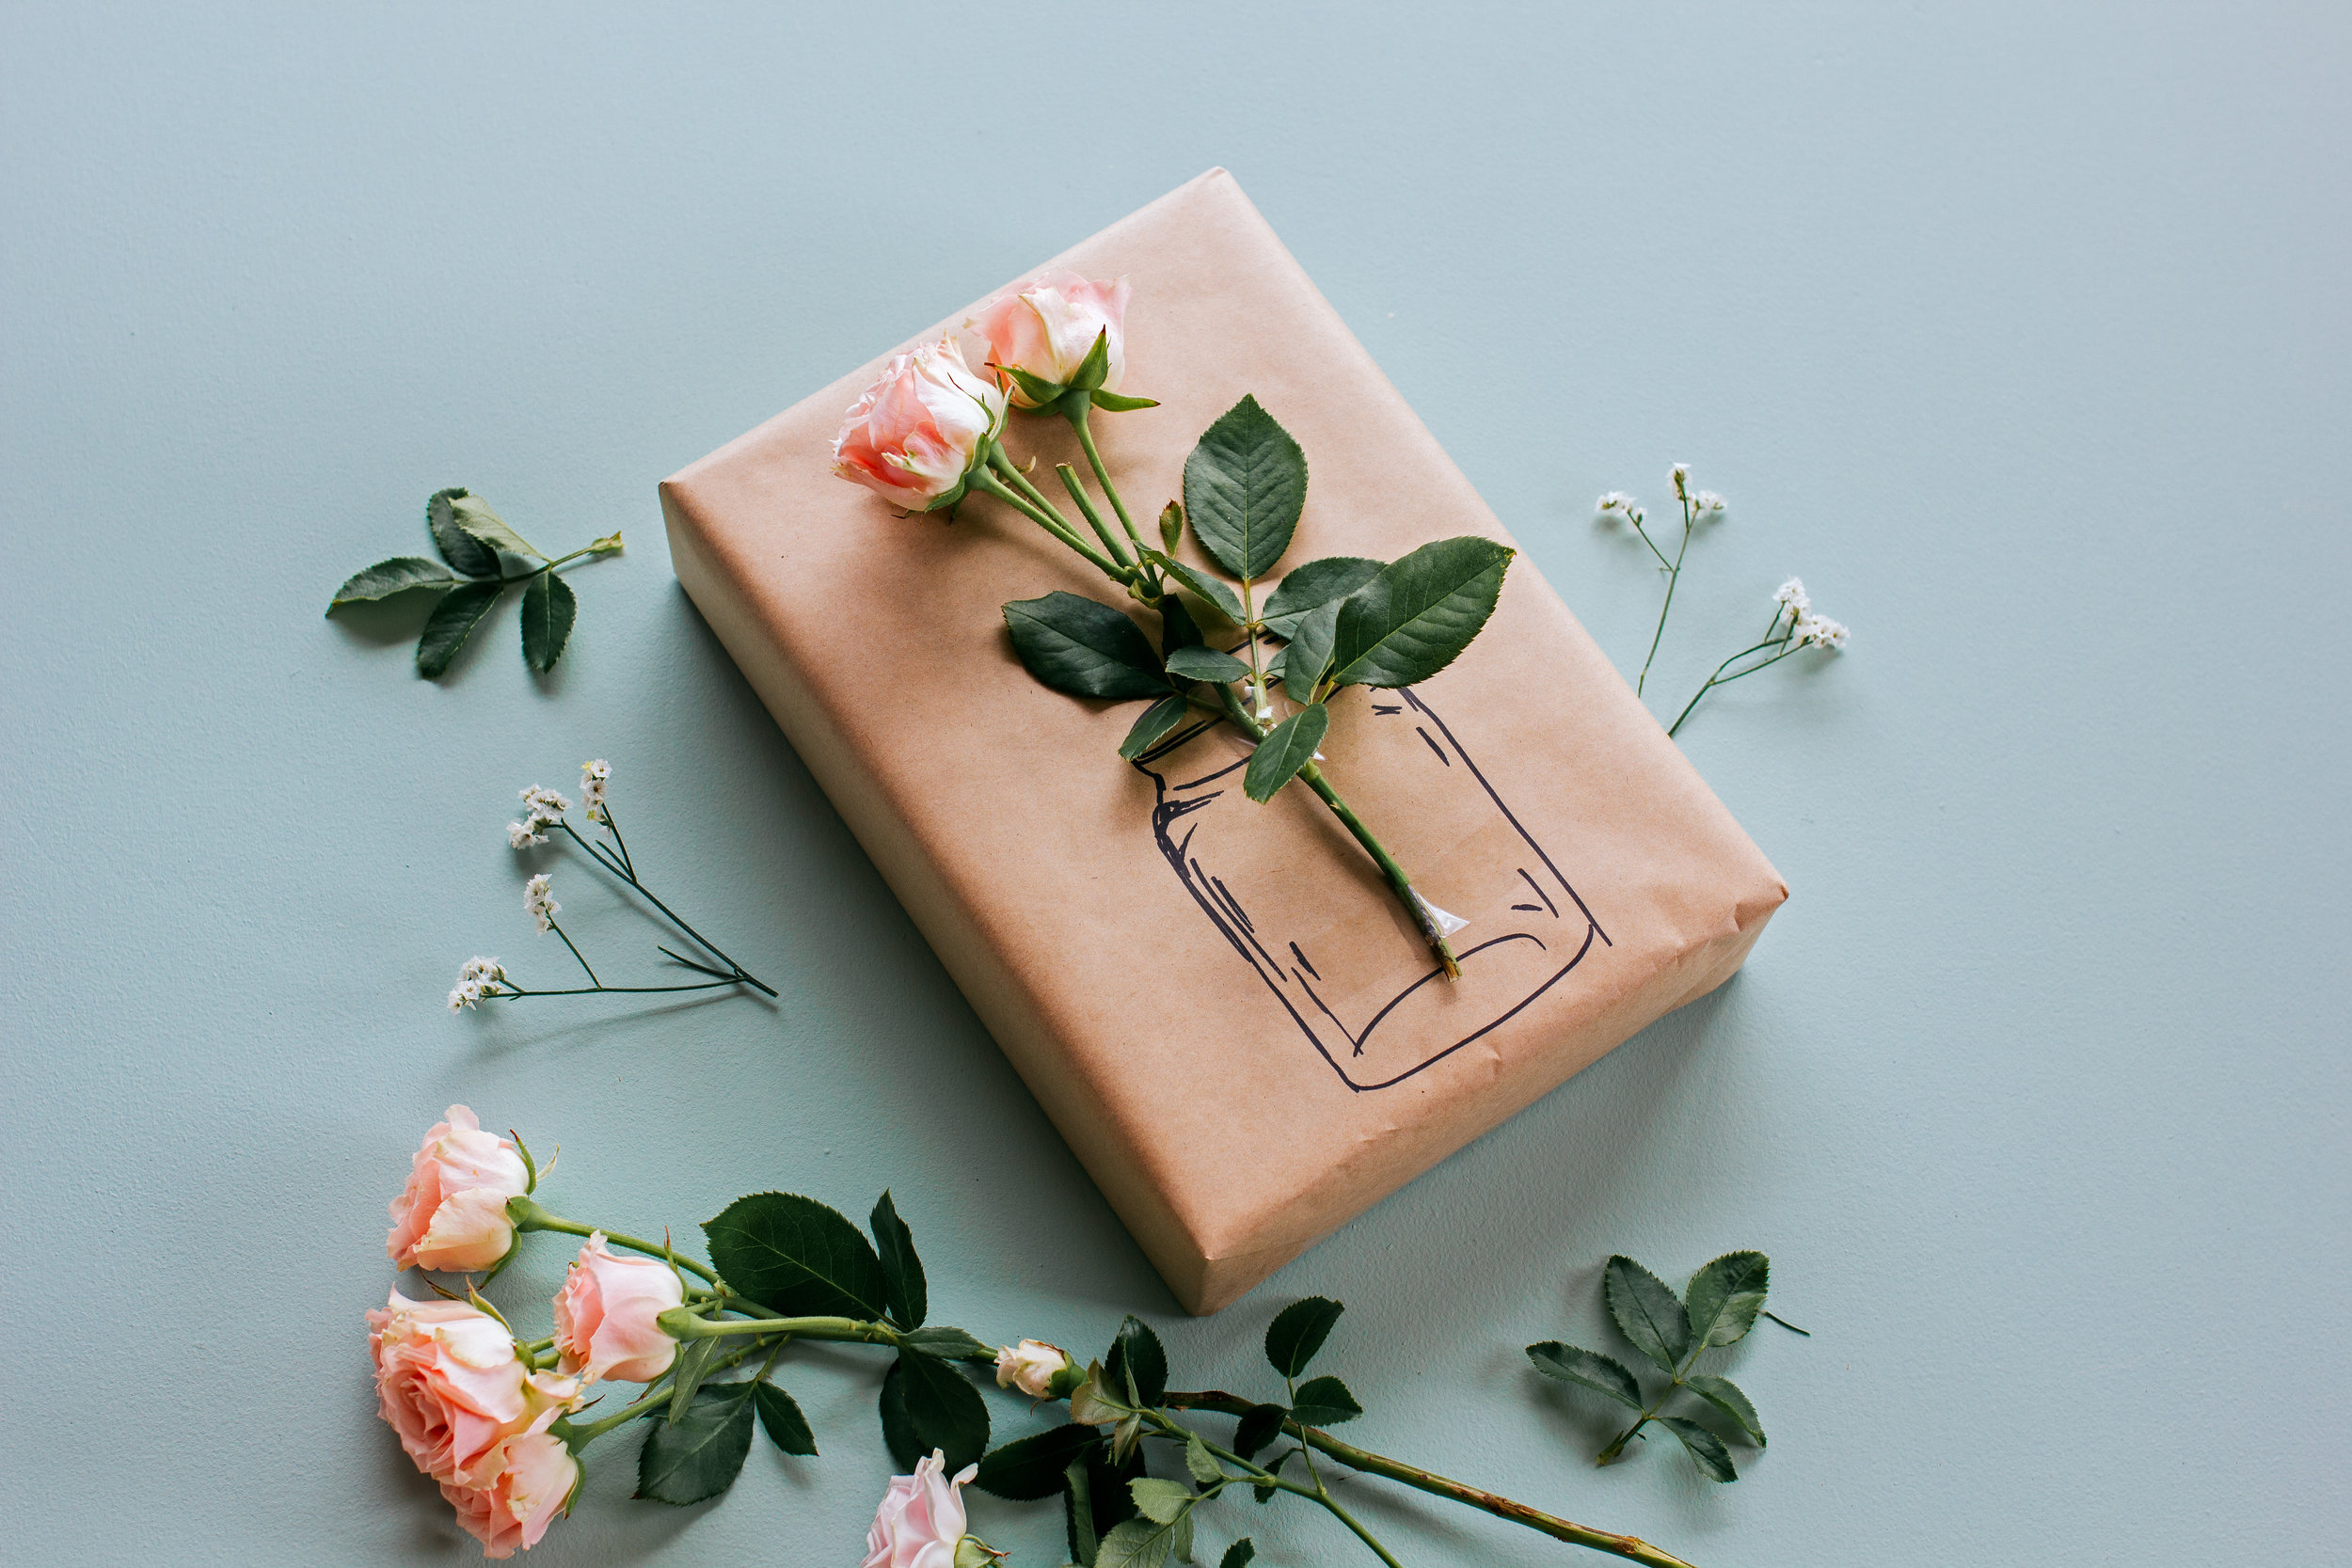 DIY_Floral_Gift_Wrapping_by_Clever_Poppy.jpg